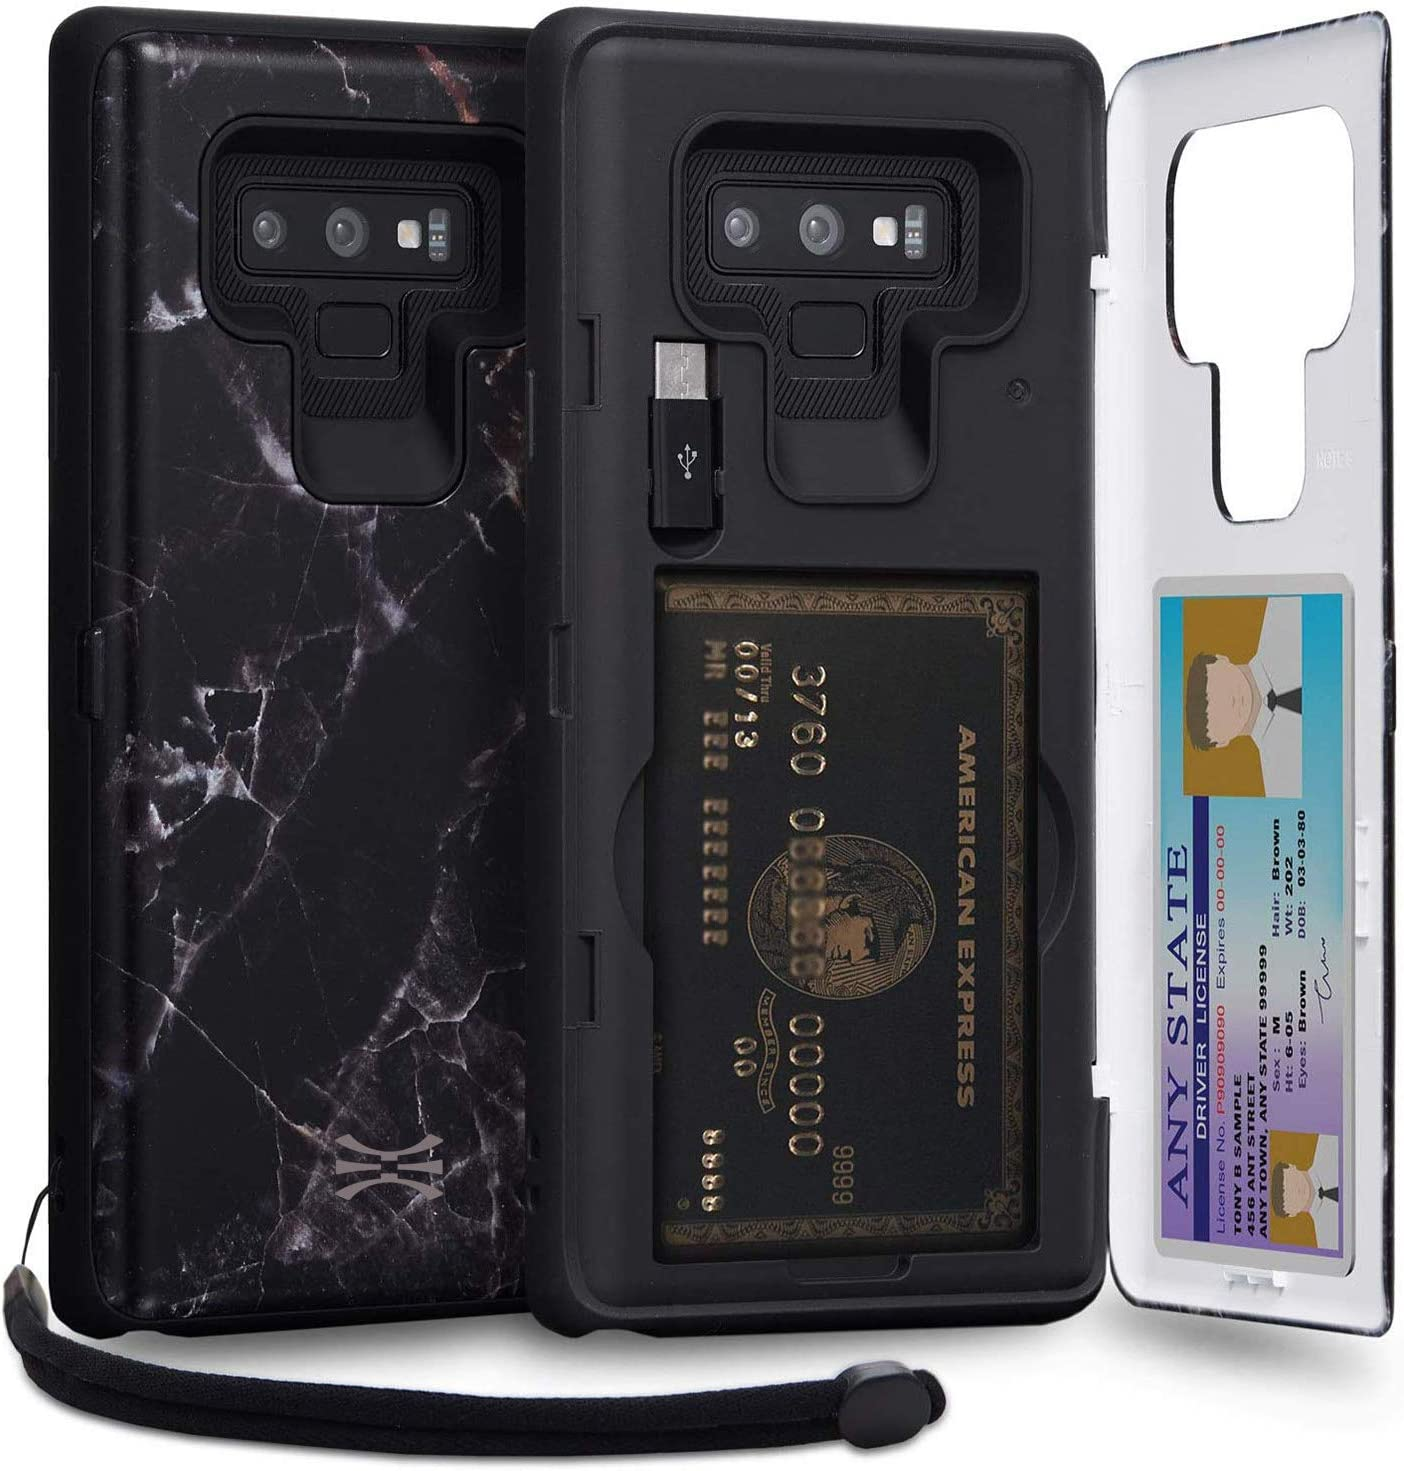 Mirror /& USB Adapter for Samsung Galaxy S9 Black Marble TORU CX PRO Galaxy S9 Wallet Case Pattern with Hidden Credit Card Holder ID Slot Hard Cover